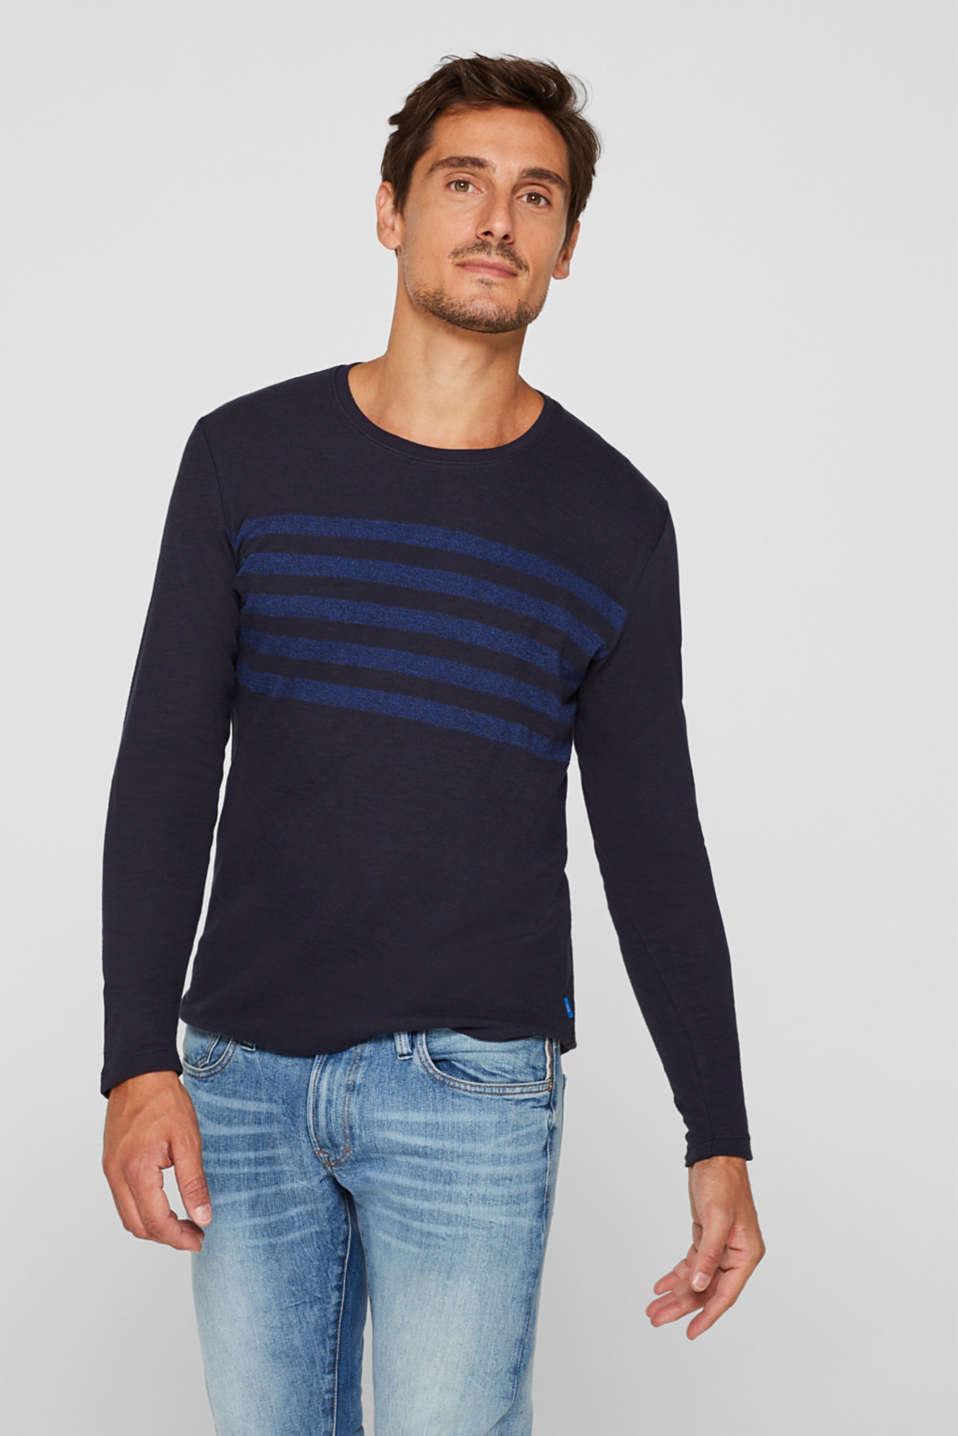 Jersey long sleeve top with stripes, NAVY, detail image number 0